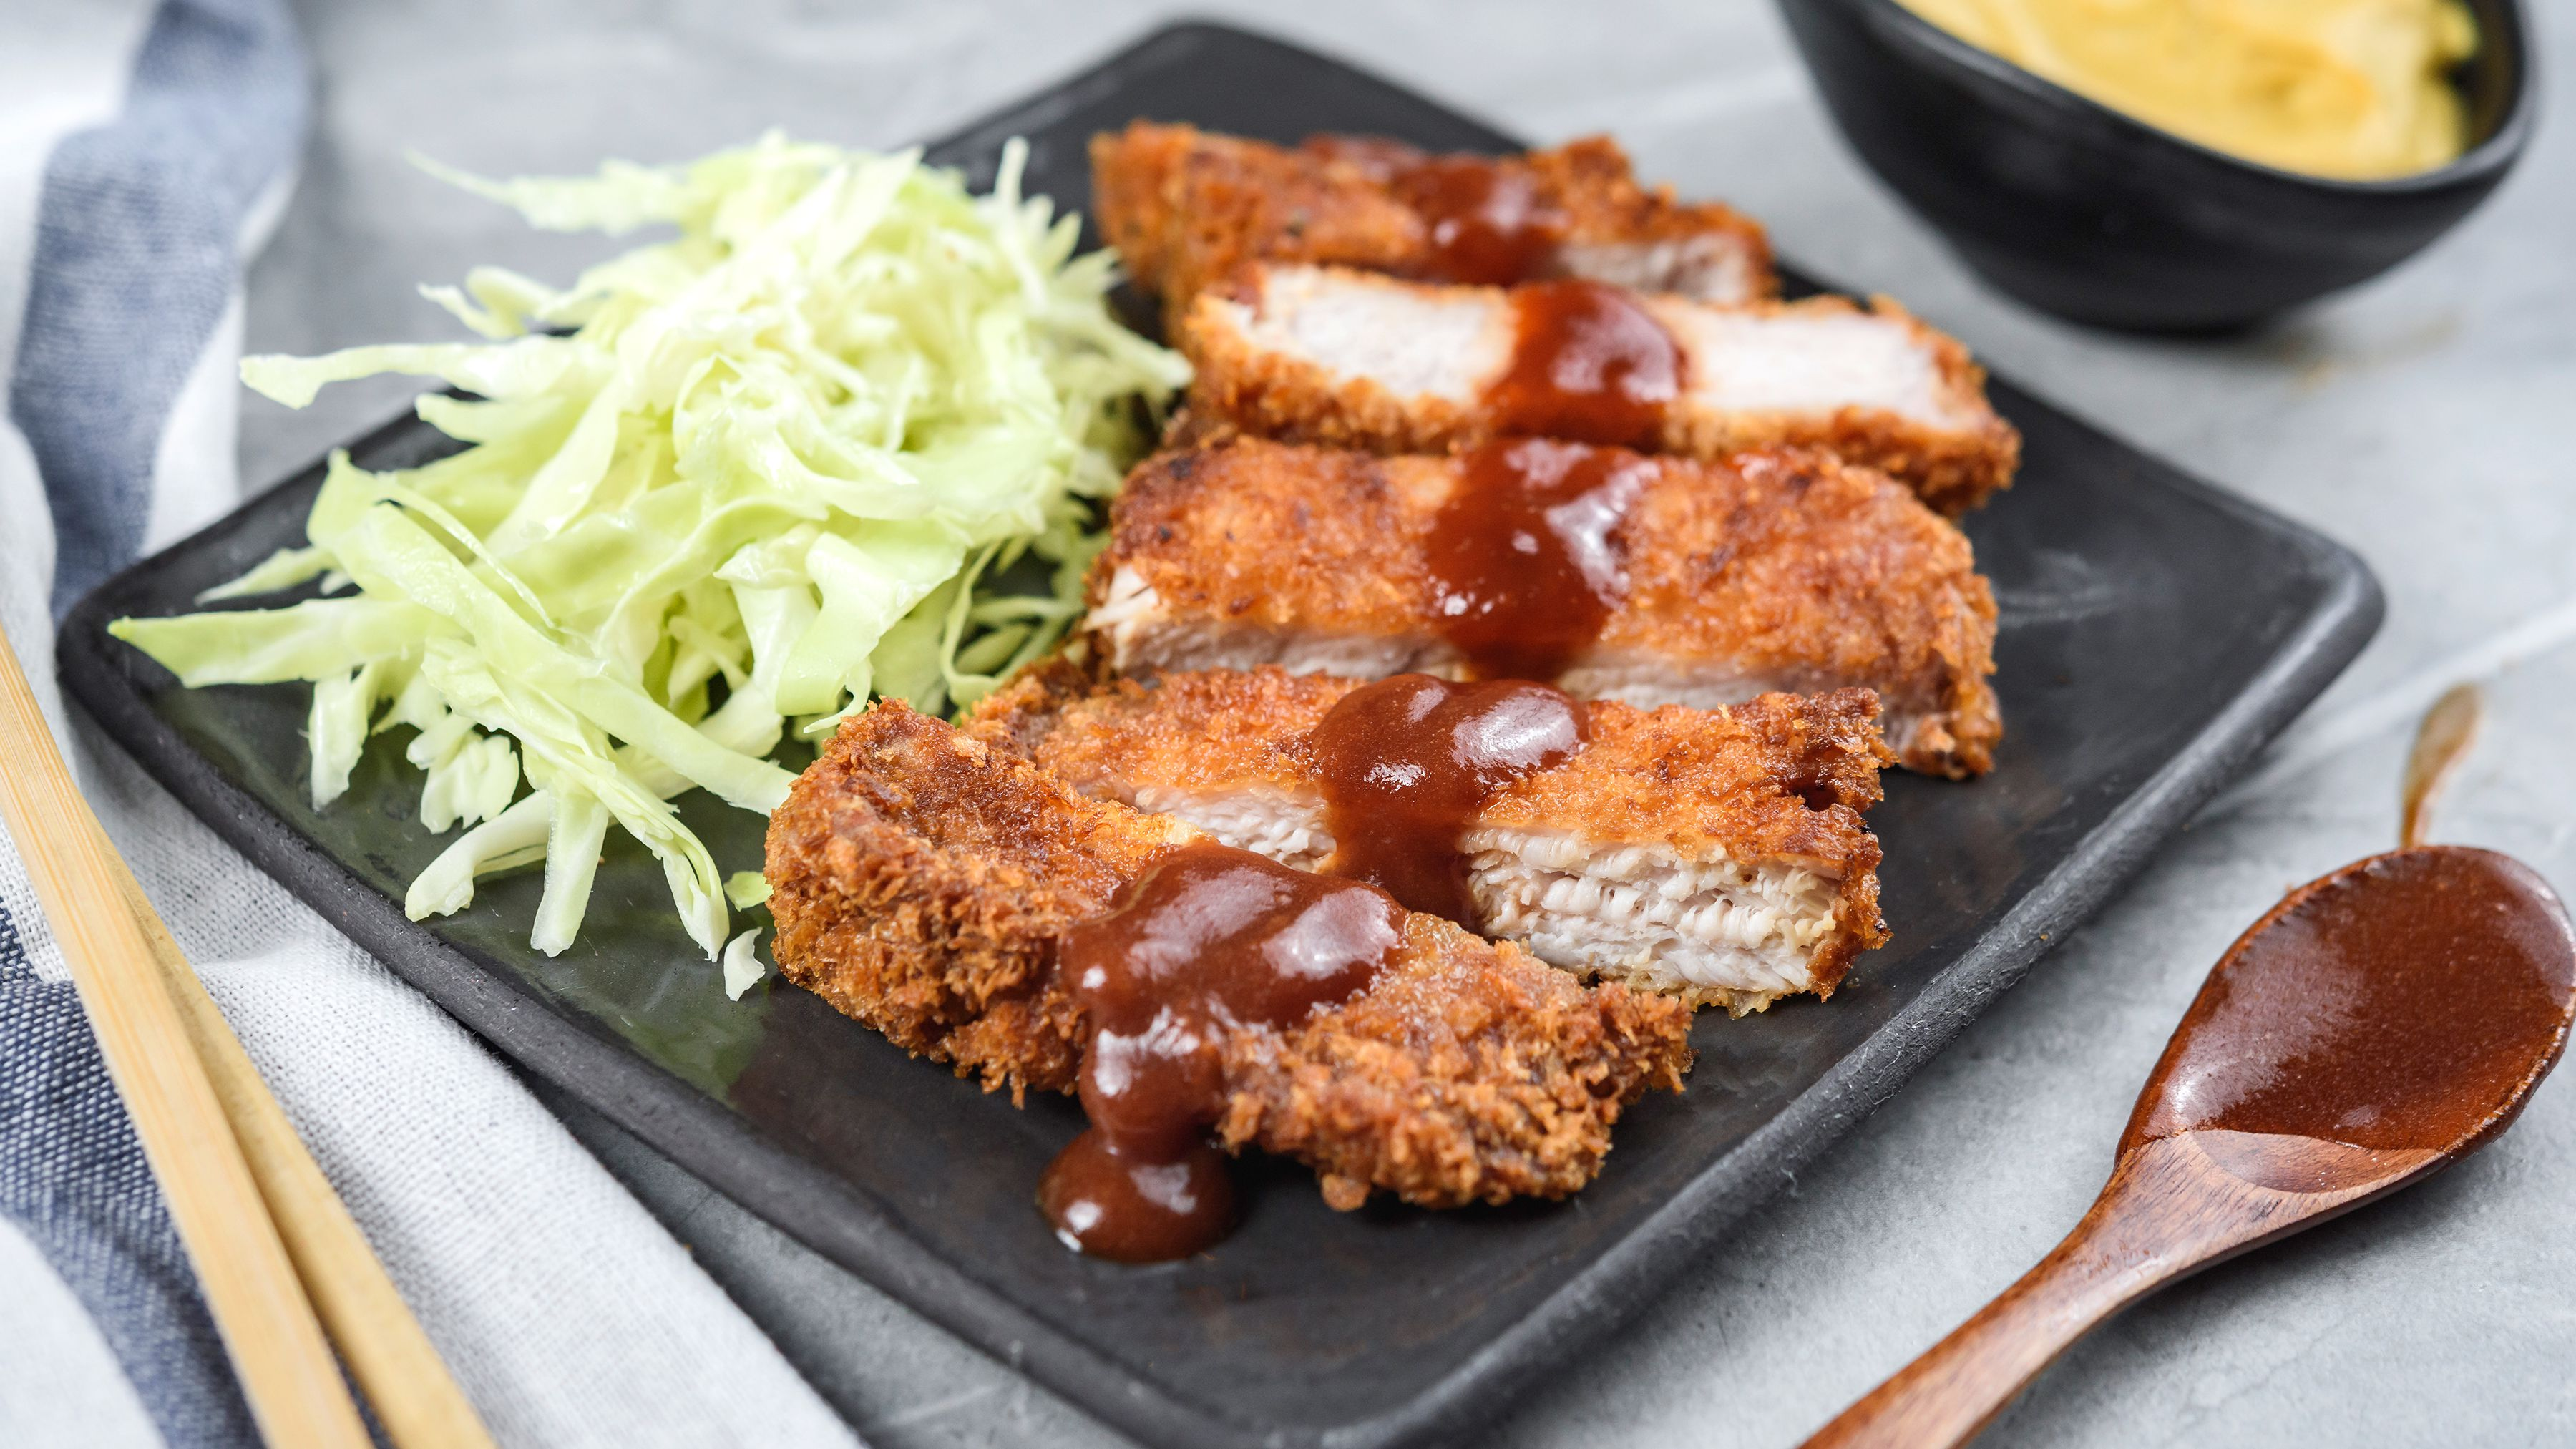 Japanese Fried Pork Cutlet (Tonkatsu) Recipe